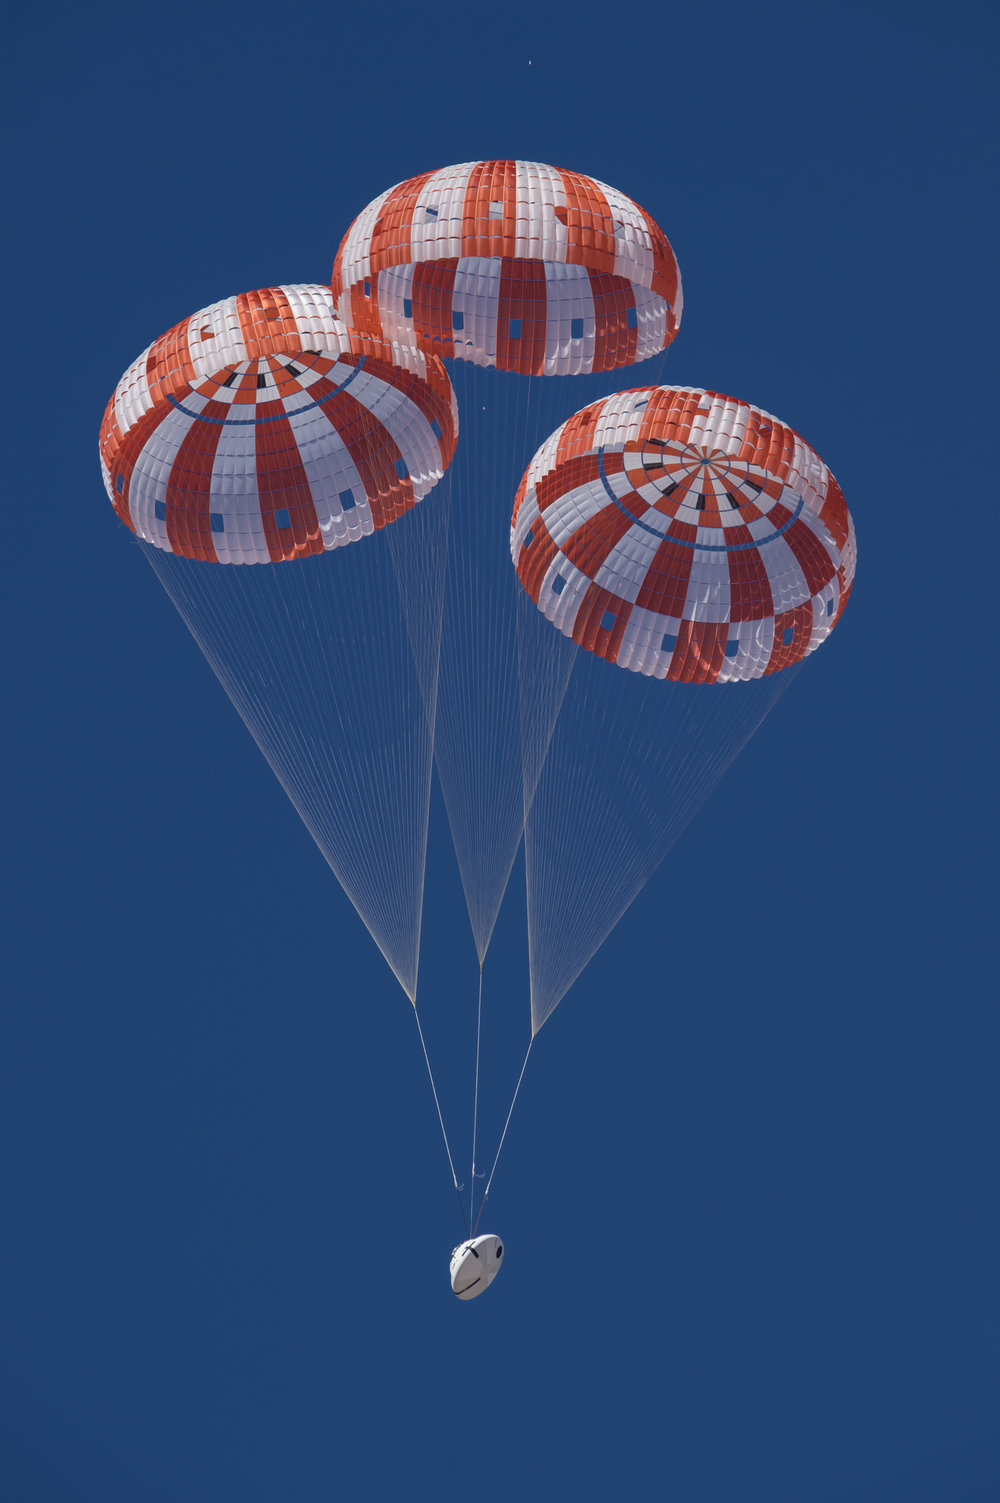 NASA is qualifying Orion's parachutes for missions with astronauts. - Image Credits: NASA (click to enlarge)